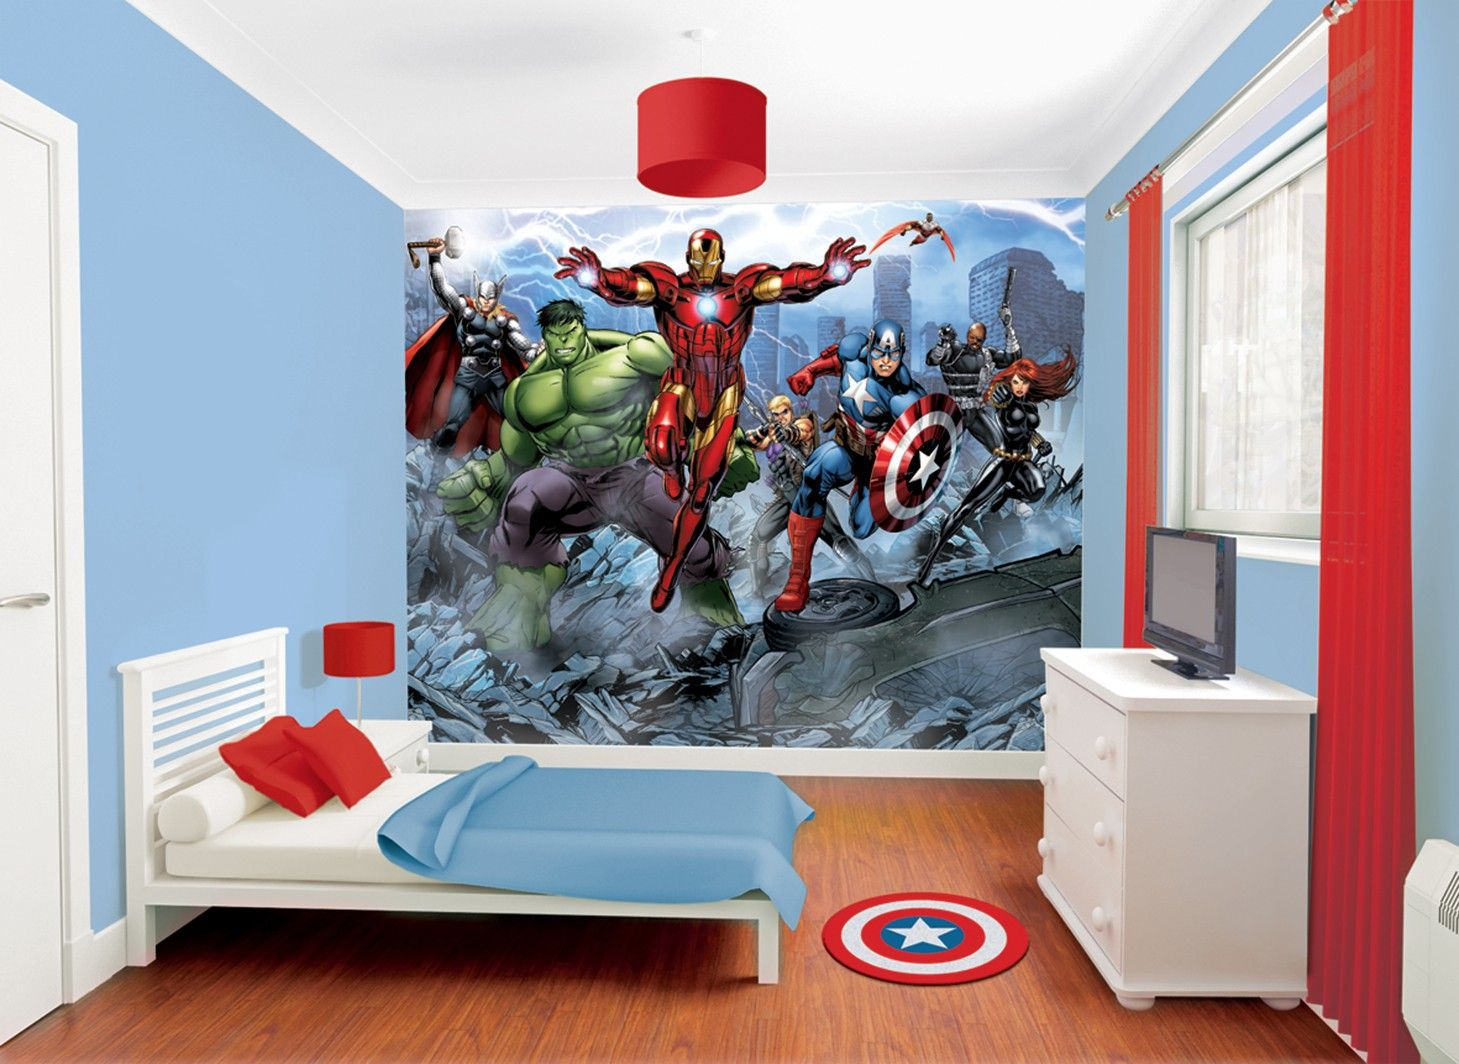 Marvel Avengers Wallpaper Murals...The Boys Need This For Their New Room! Part 83